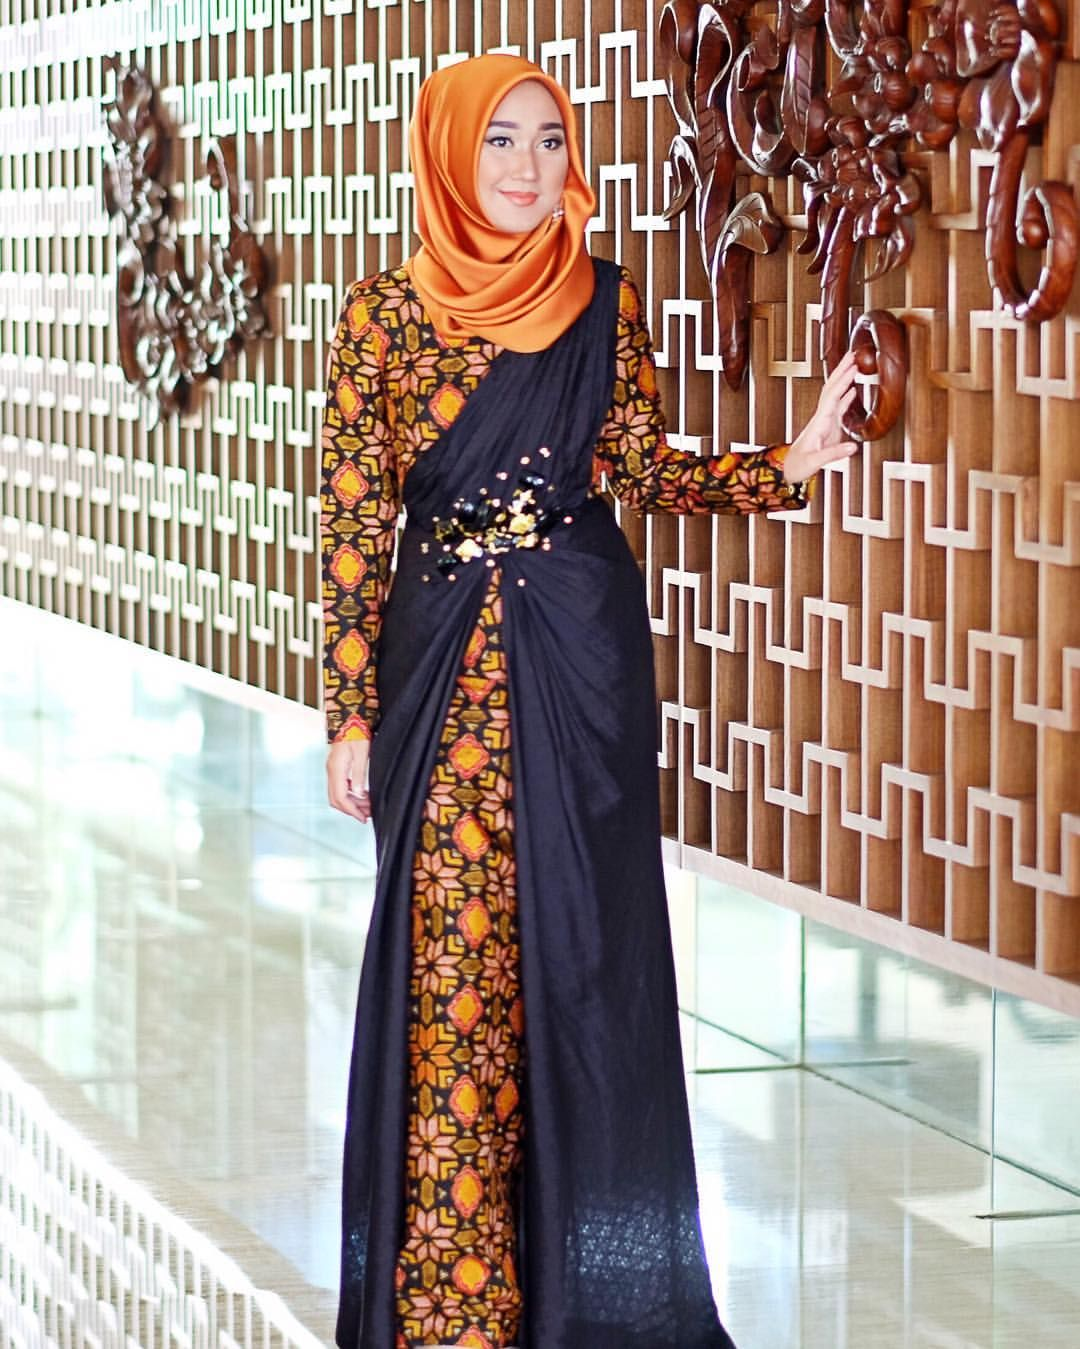 Wearing @dianpelangicom batik dress, and @hijabellove satin scarf in 'Thaitea' #PerfectMatch Make up using @wardahbeauty by yours truly ✨